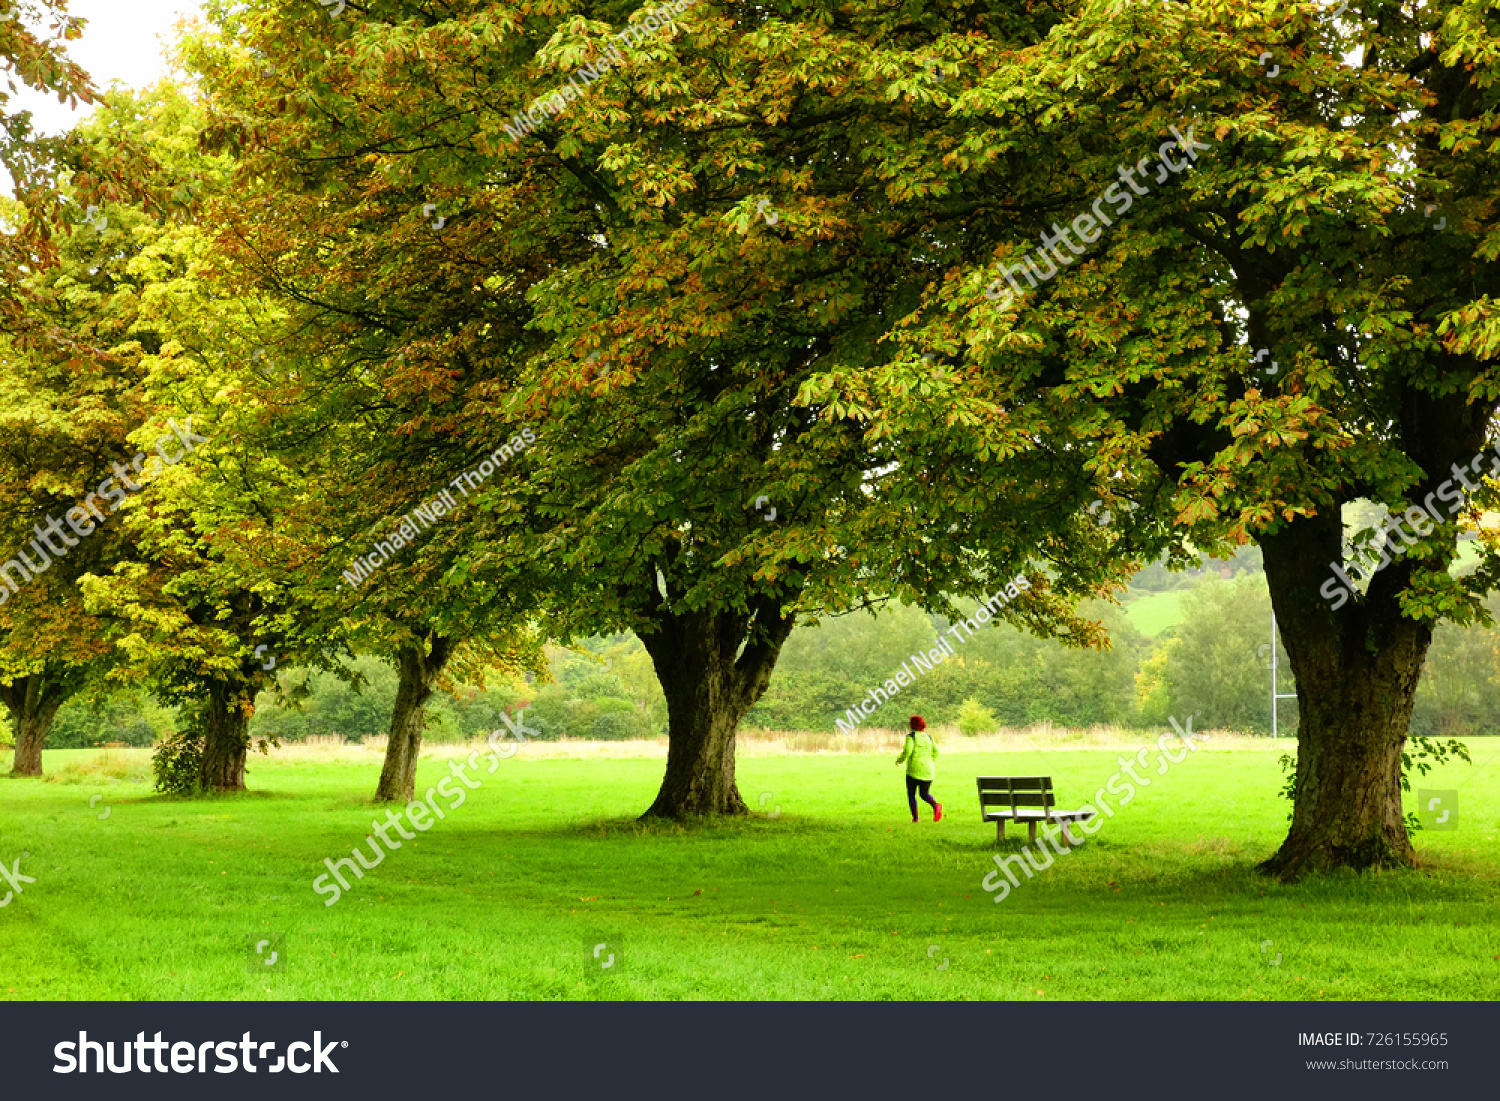 Avenue Horse Chestnut Trees Seen Autumn Stock Photo (Royalty Free ...